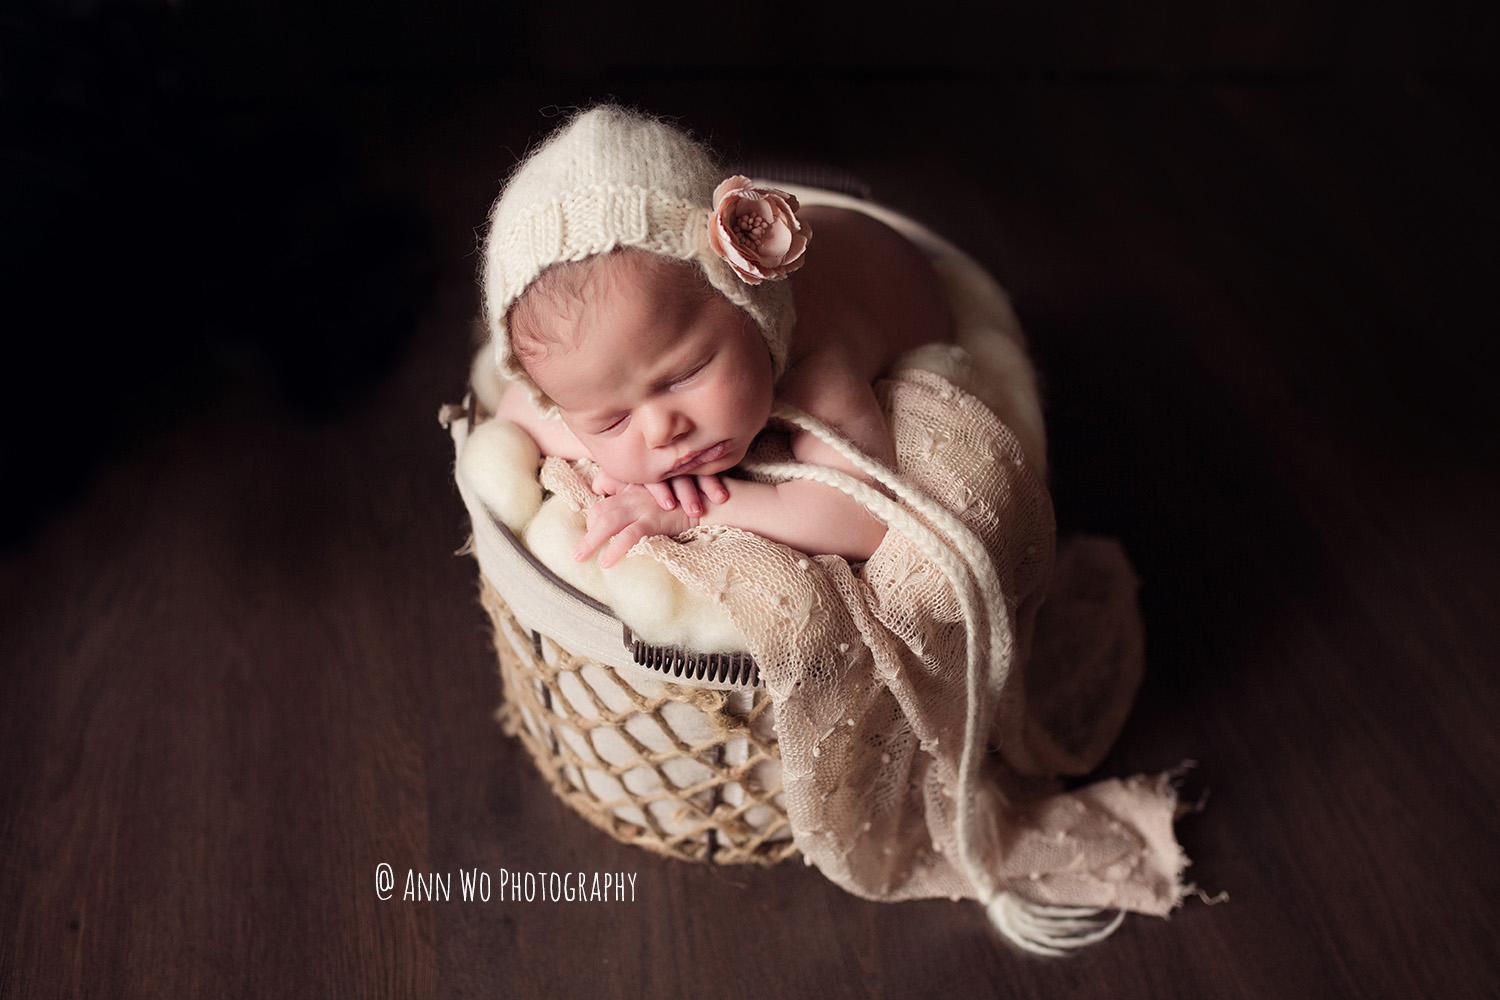 baby-photo-newborn-ann-wo-maidenhead-london-studio-basket-loose-knit-fabric.jpg